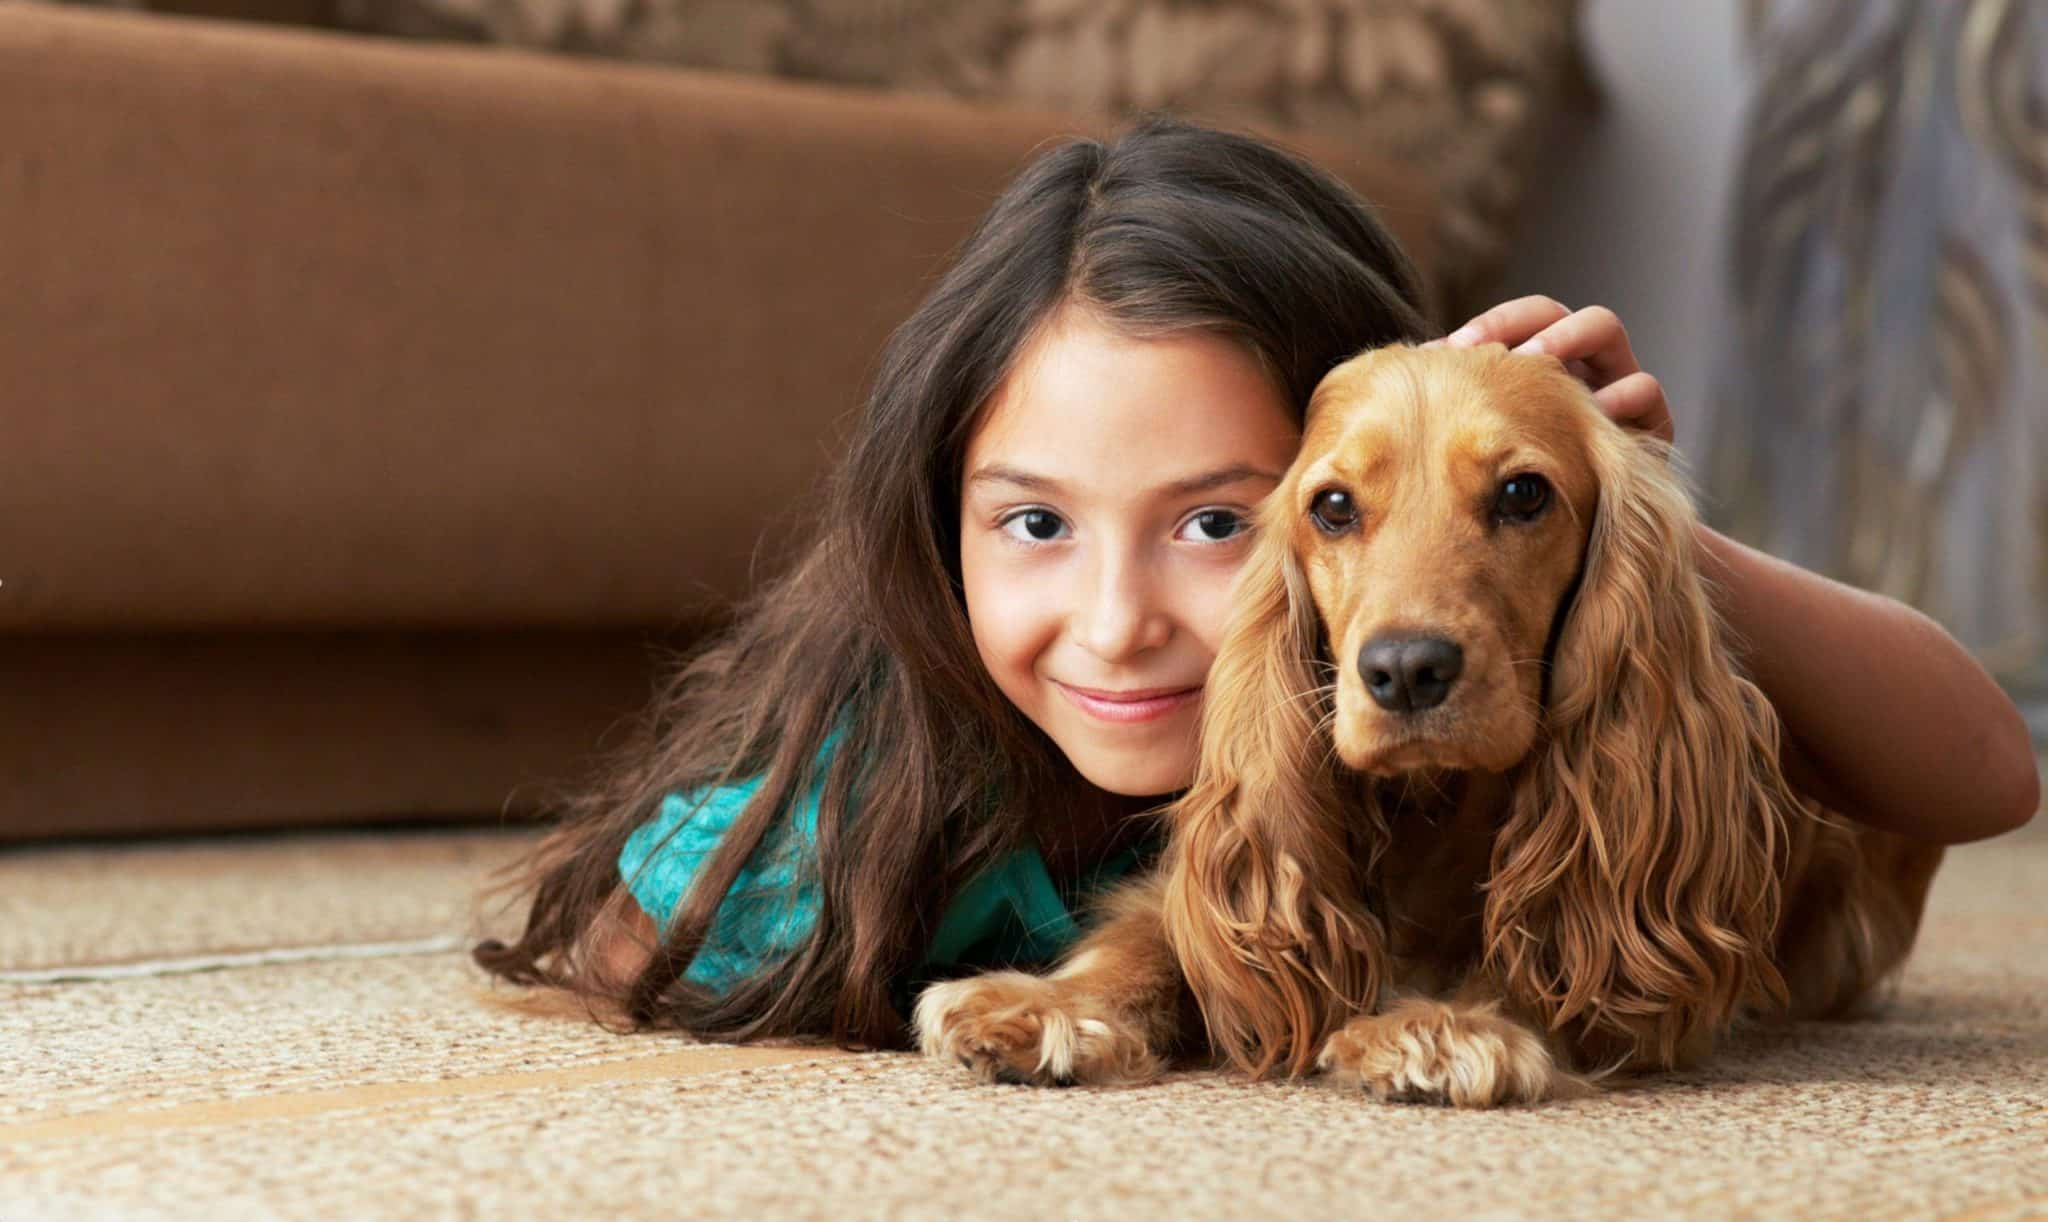 pet urine removal service for carpets and more